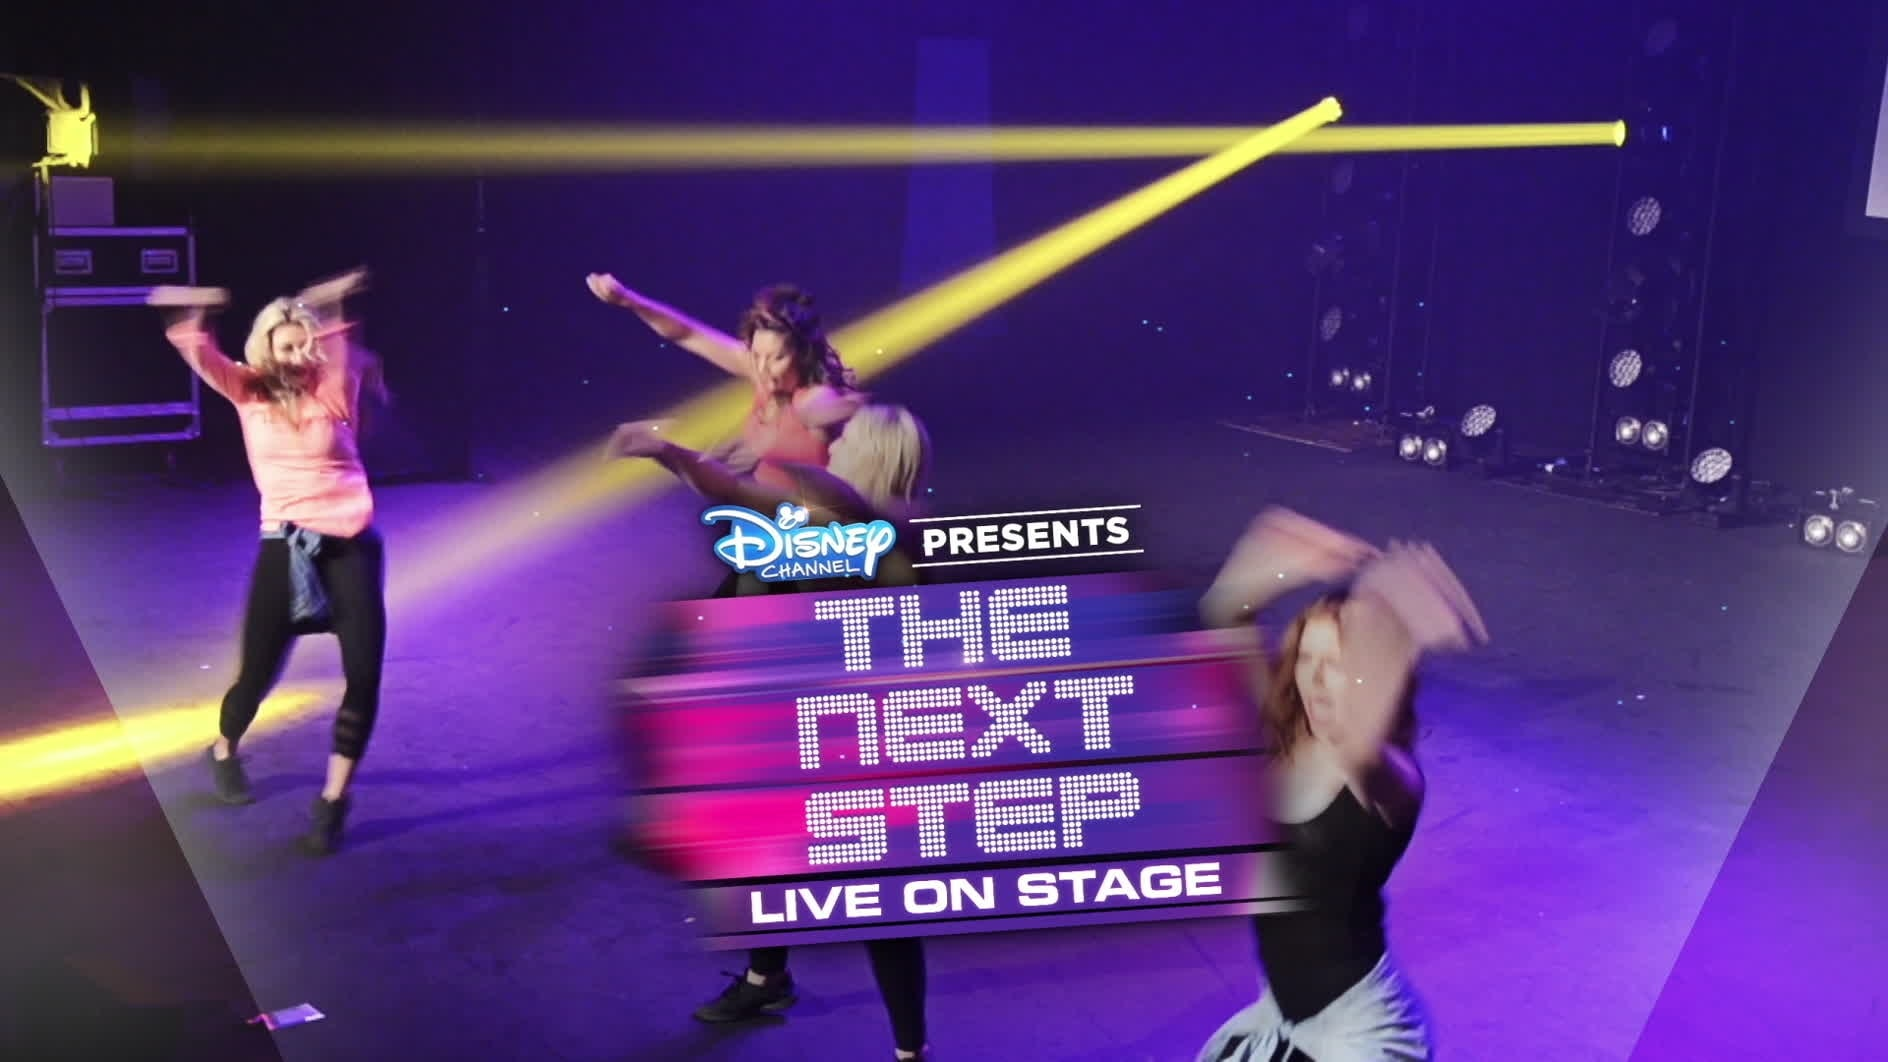 Disney Channels present The Next Step Live on Stage